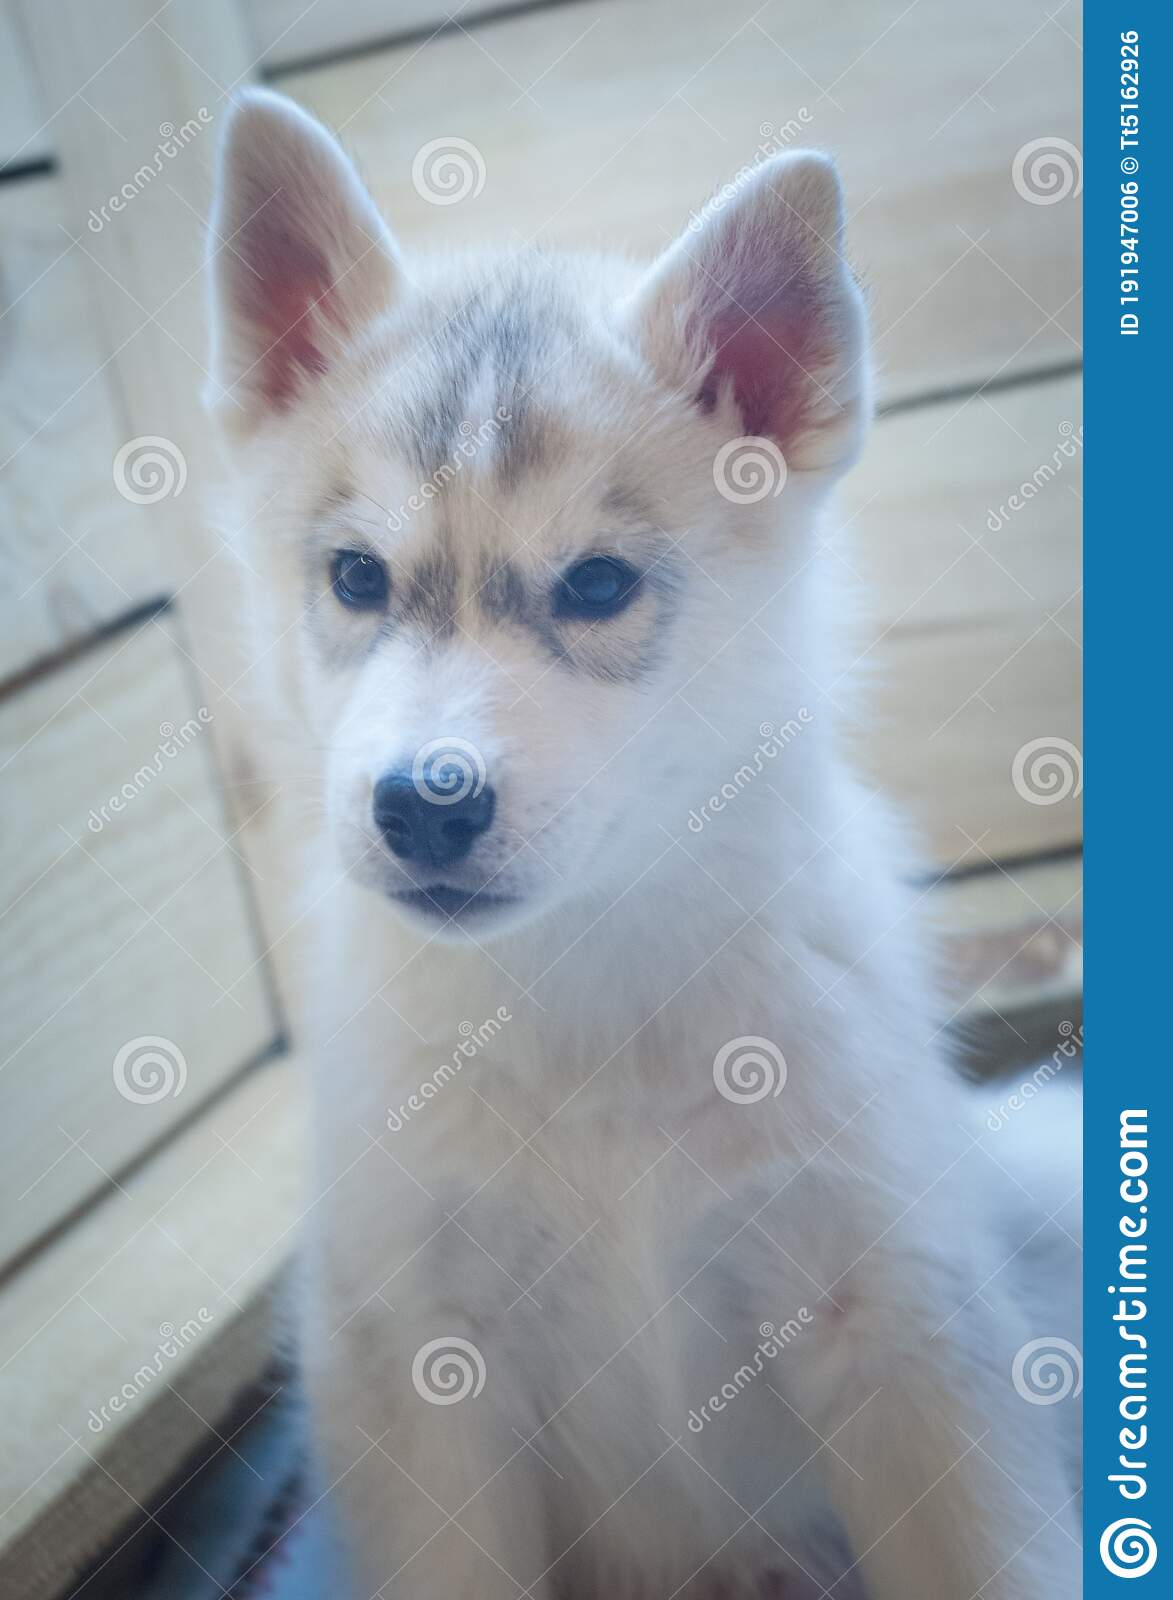 3 353 Husky Baby White Background Photos Free Royalty Free Stock Photos From Dreamstime